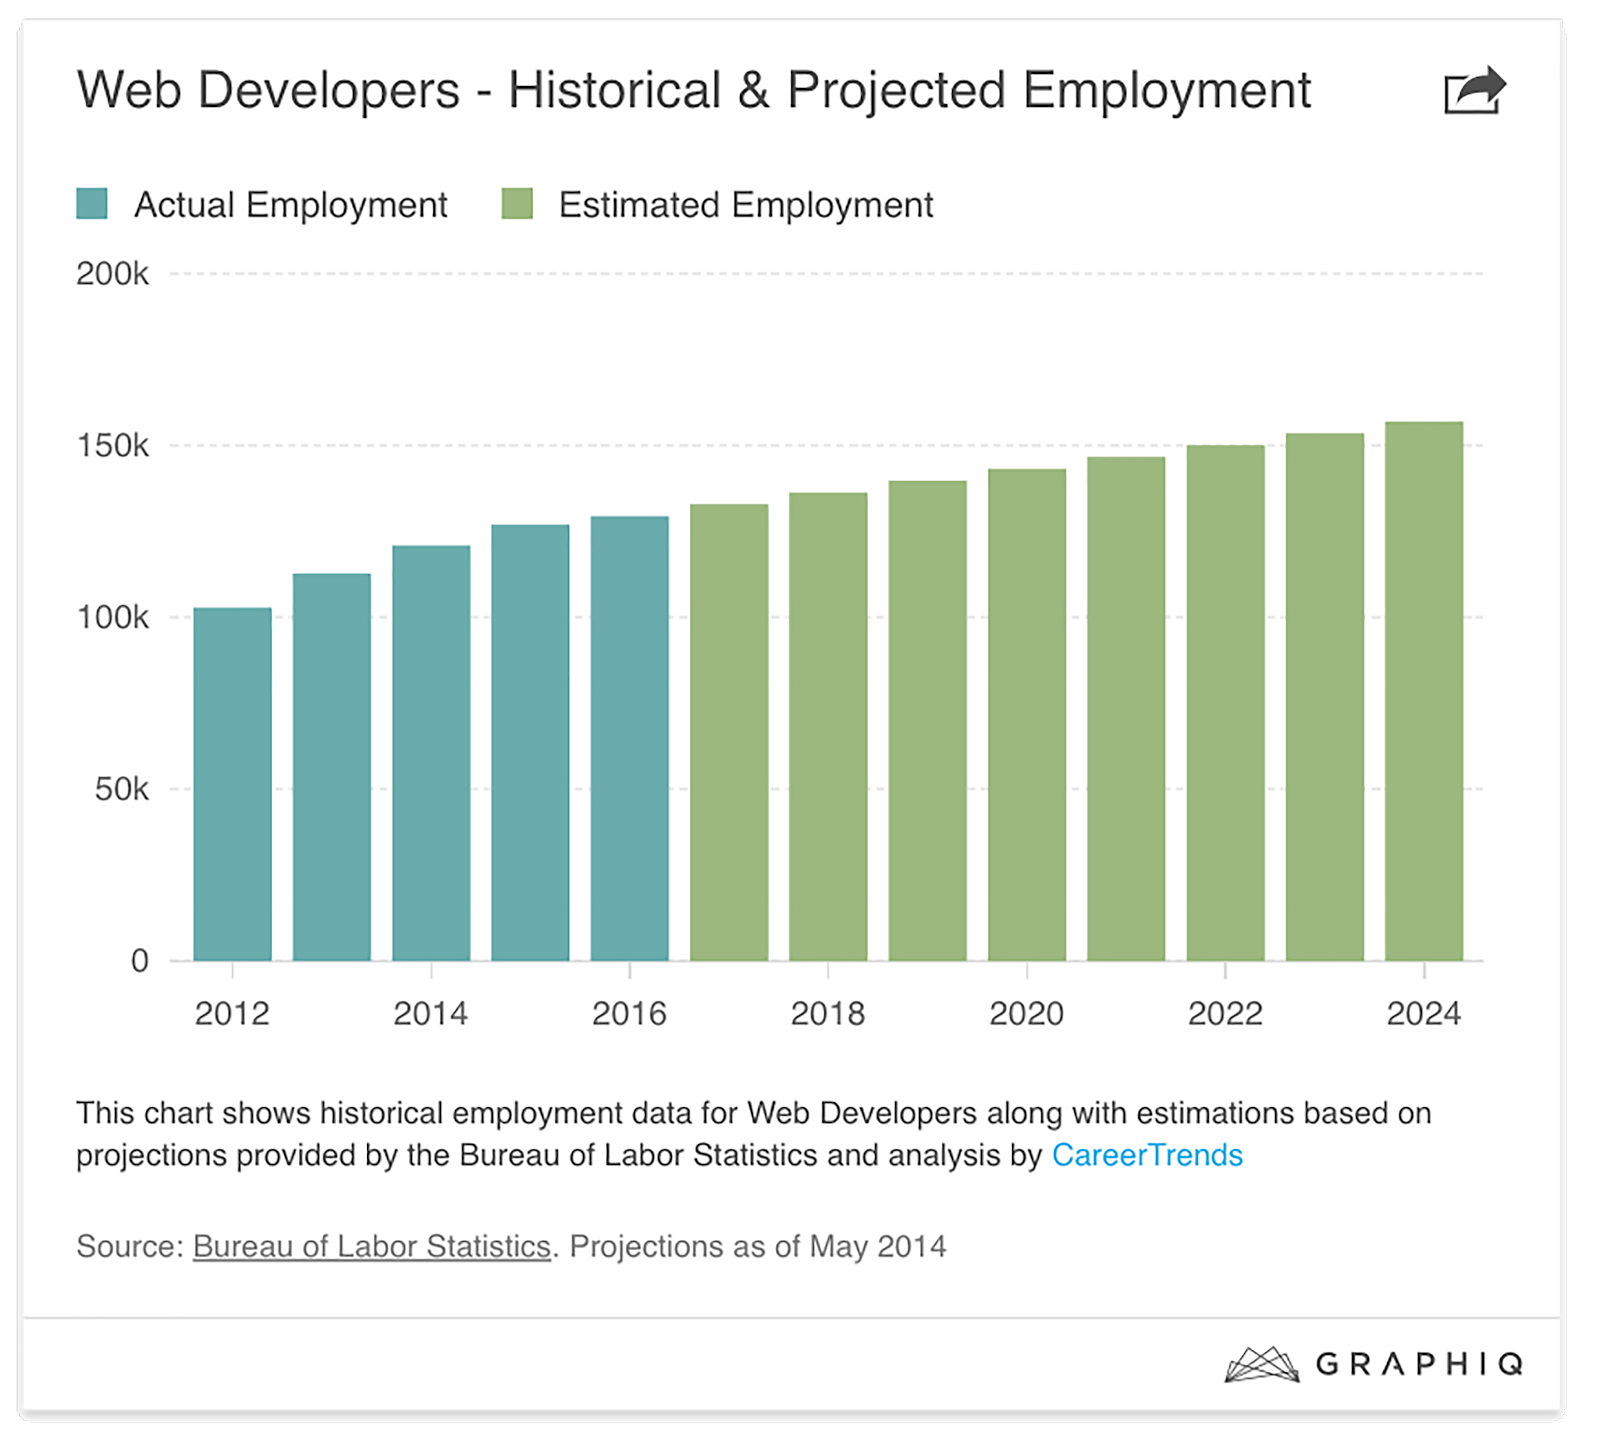 demand-for-developers-2012-to-2024-how-to-hire-web-developers